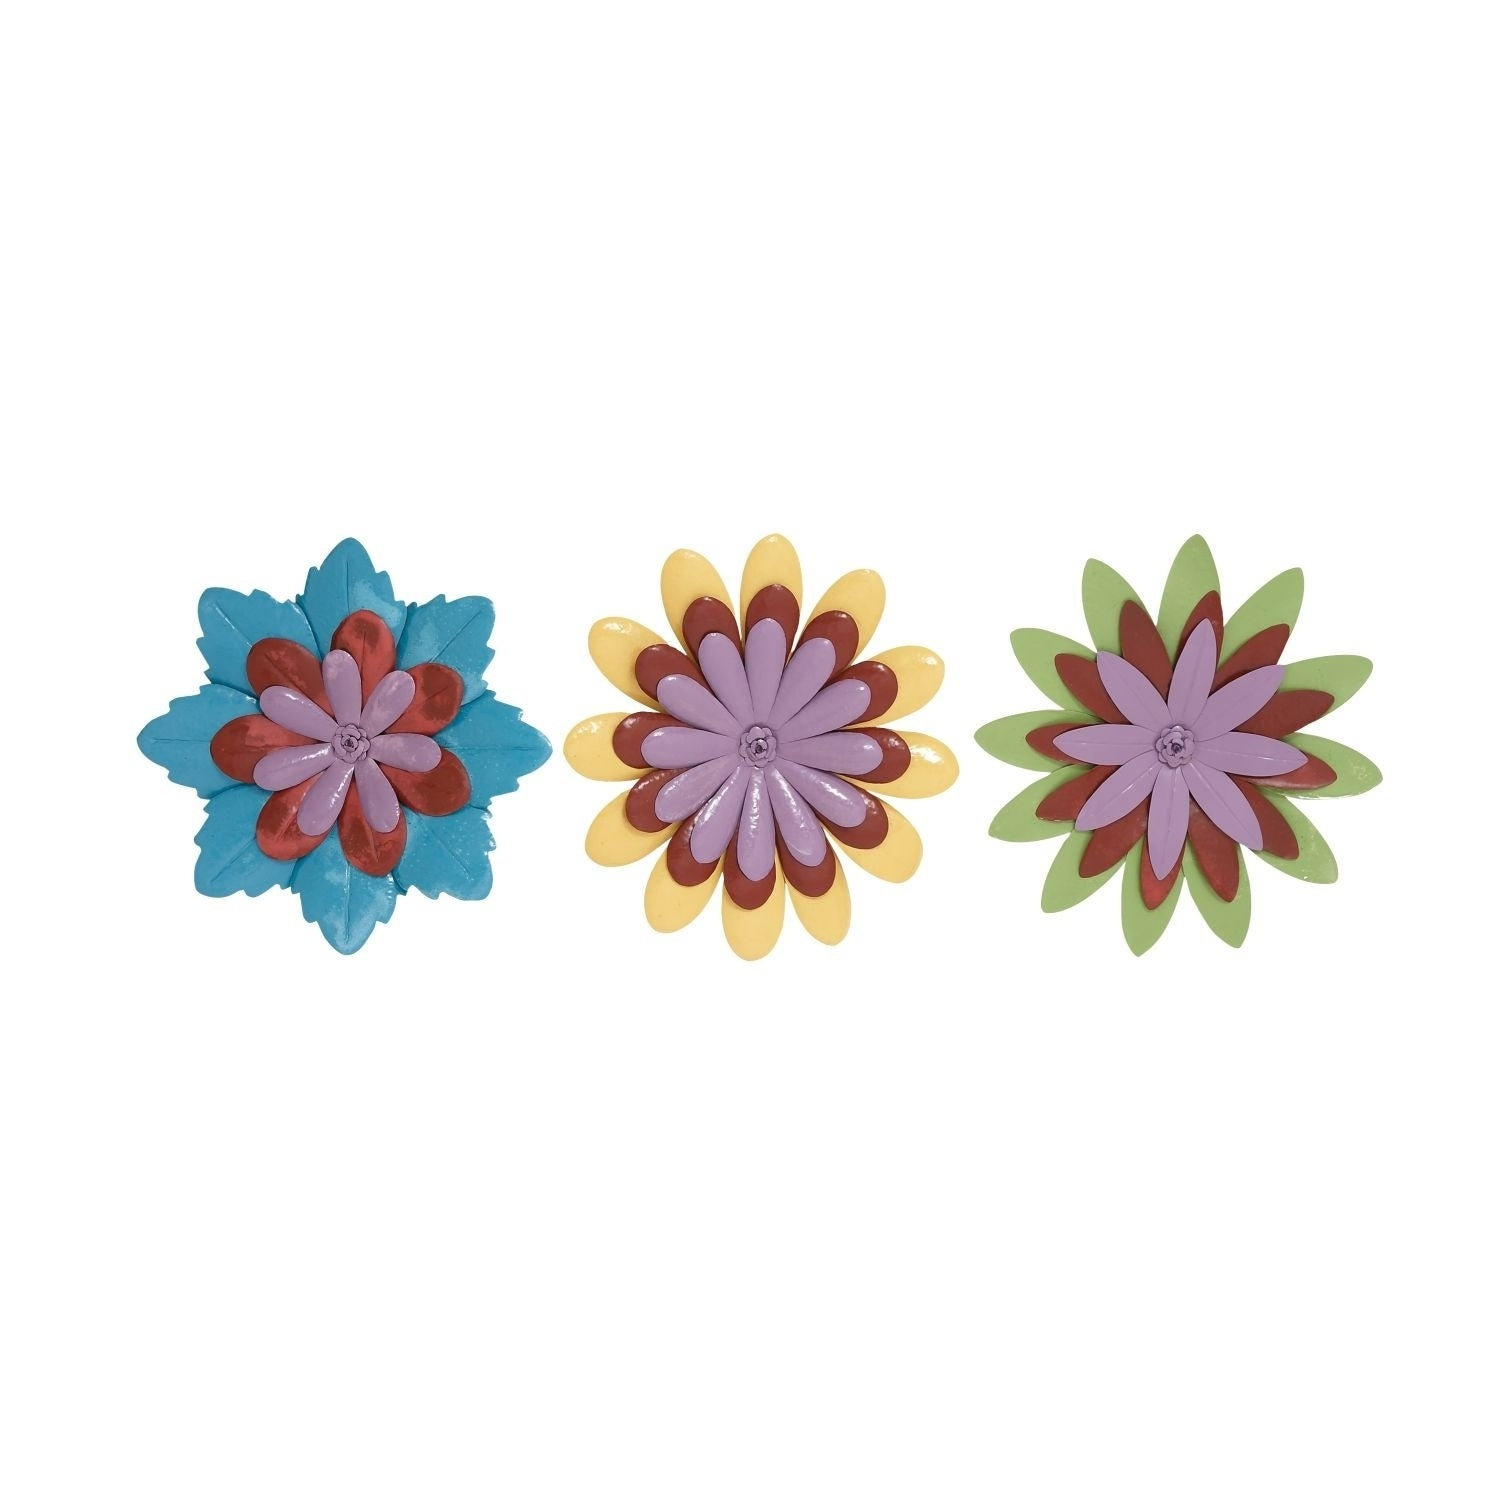 Shop Studio 350 Metal Flower Wall Decor Set Of 3, 24 Inches D – Free Within Trendy Metal Flower Wall Decor (Set Of 3) (Gallery 19 of 20)